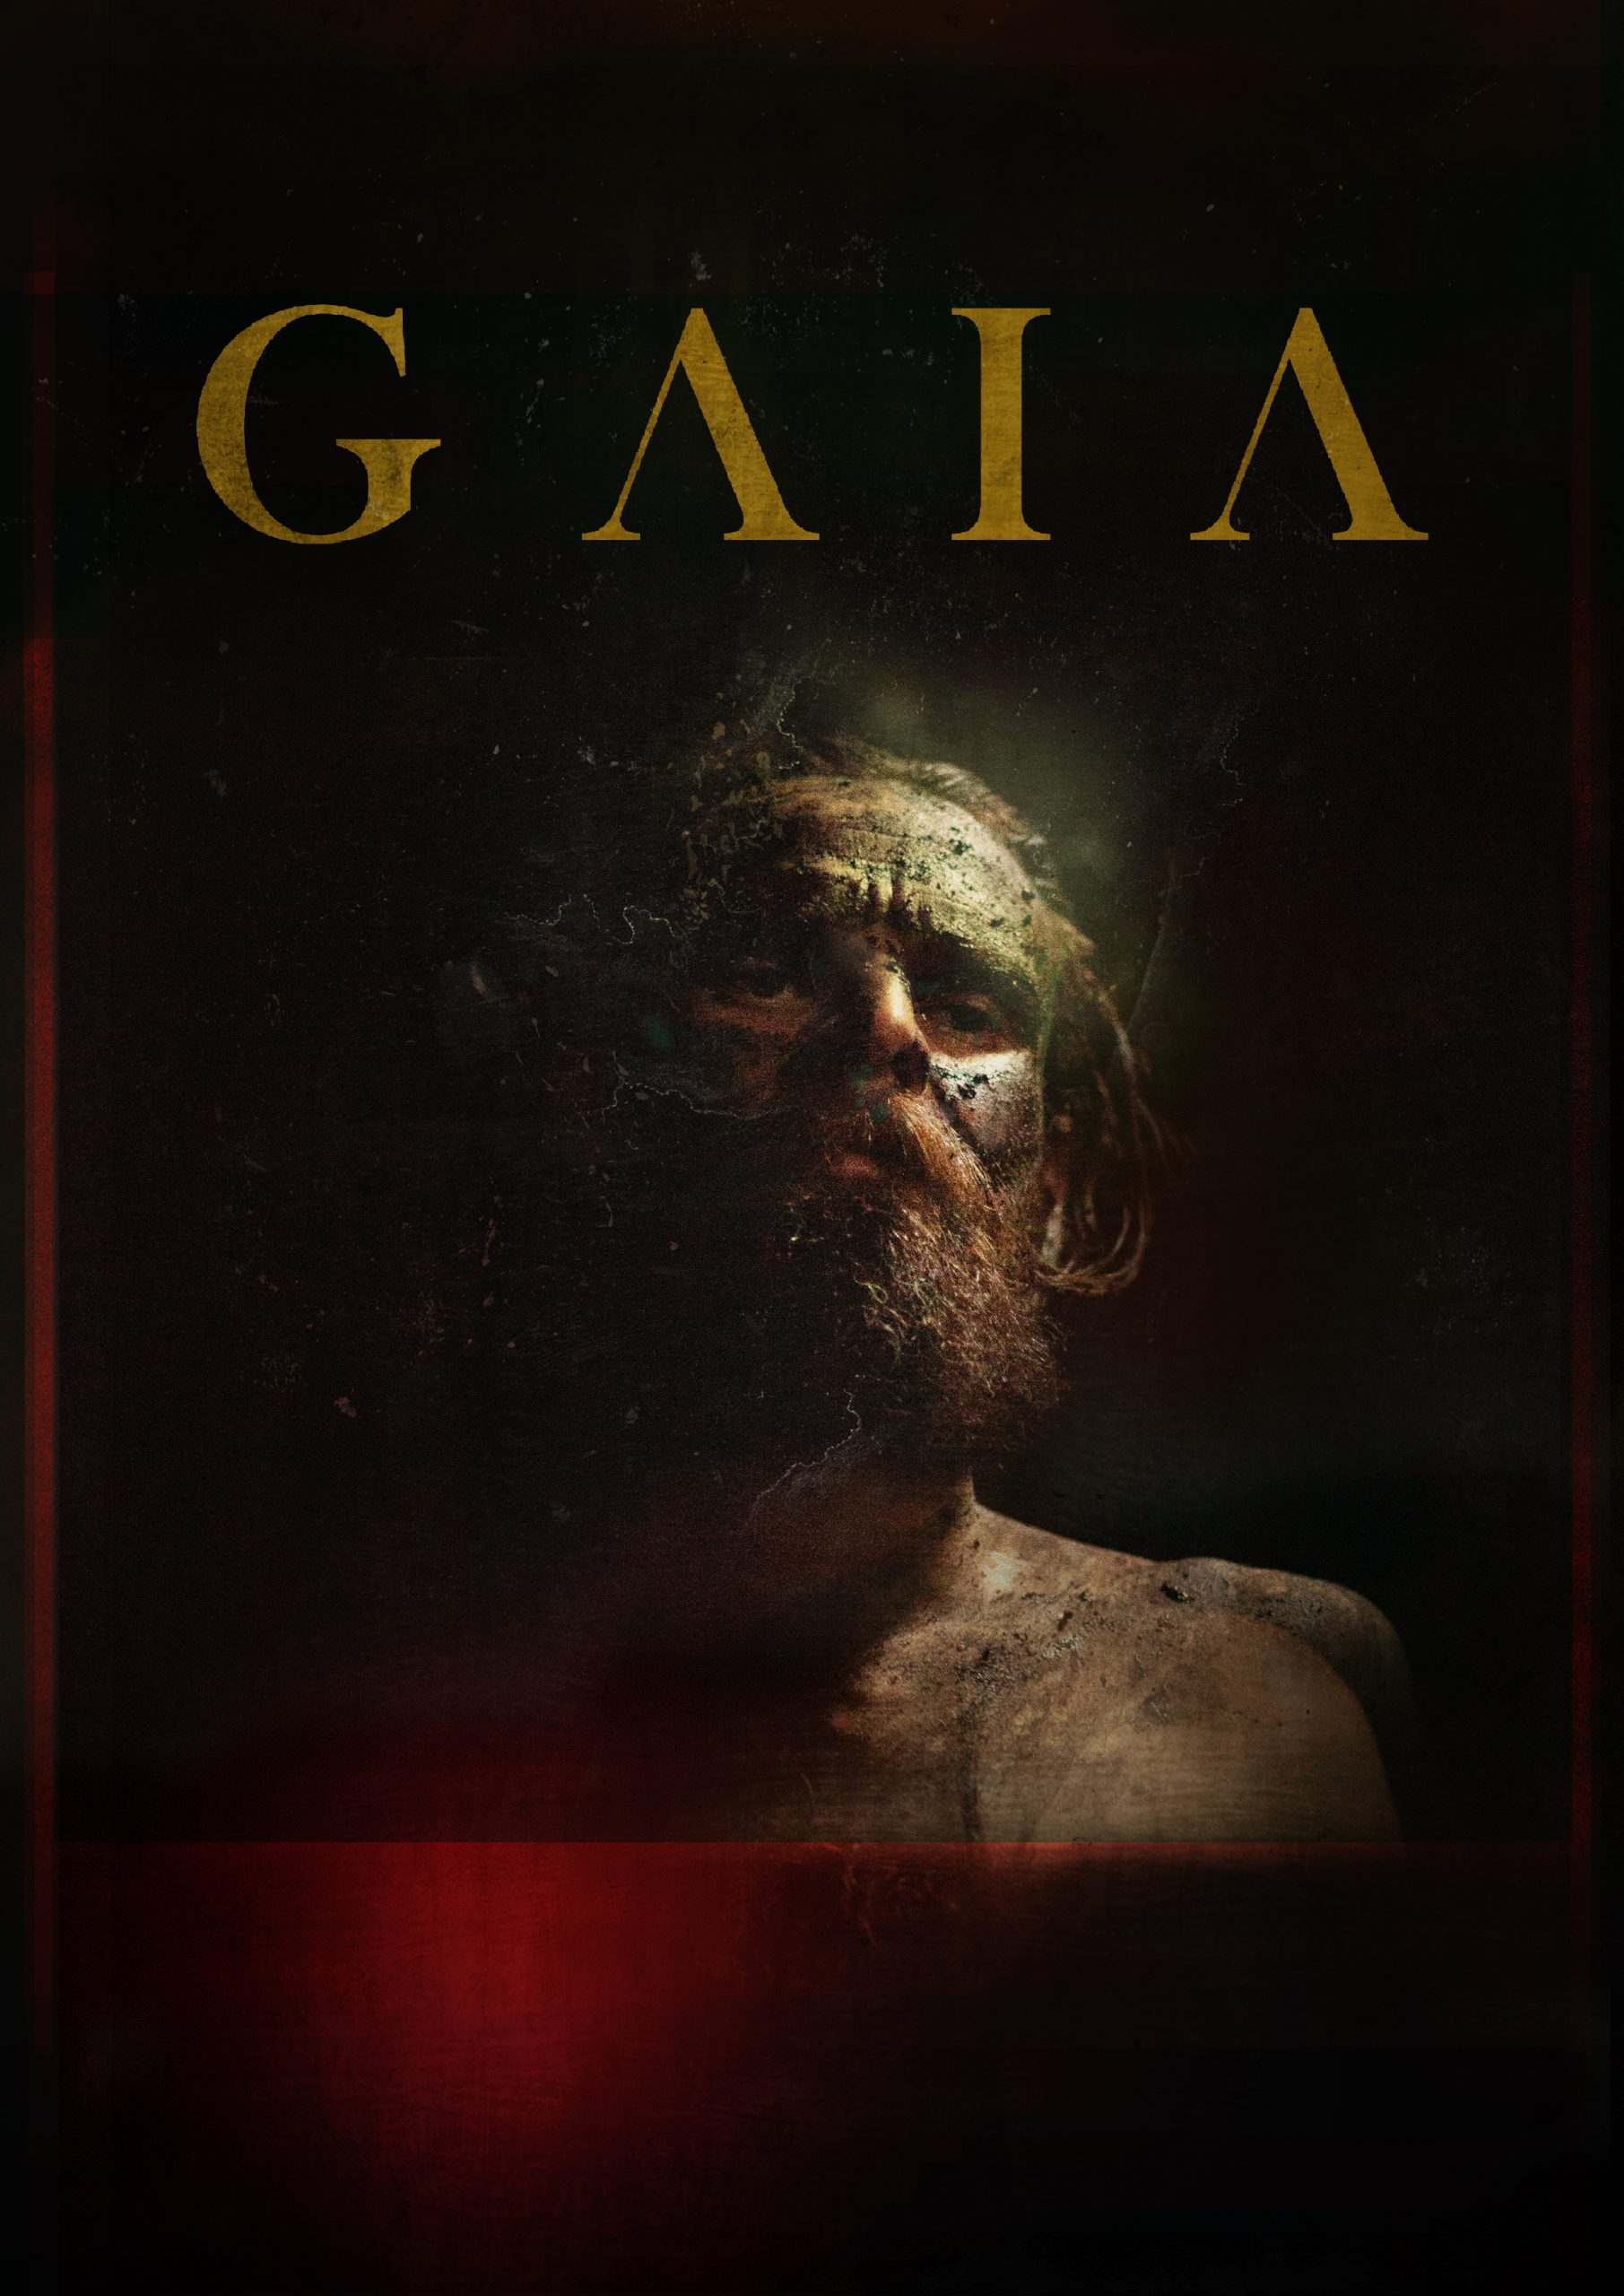 Gaia poster movie trailer (2)